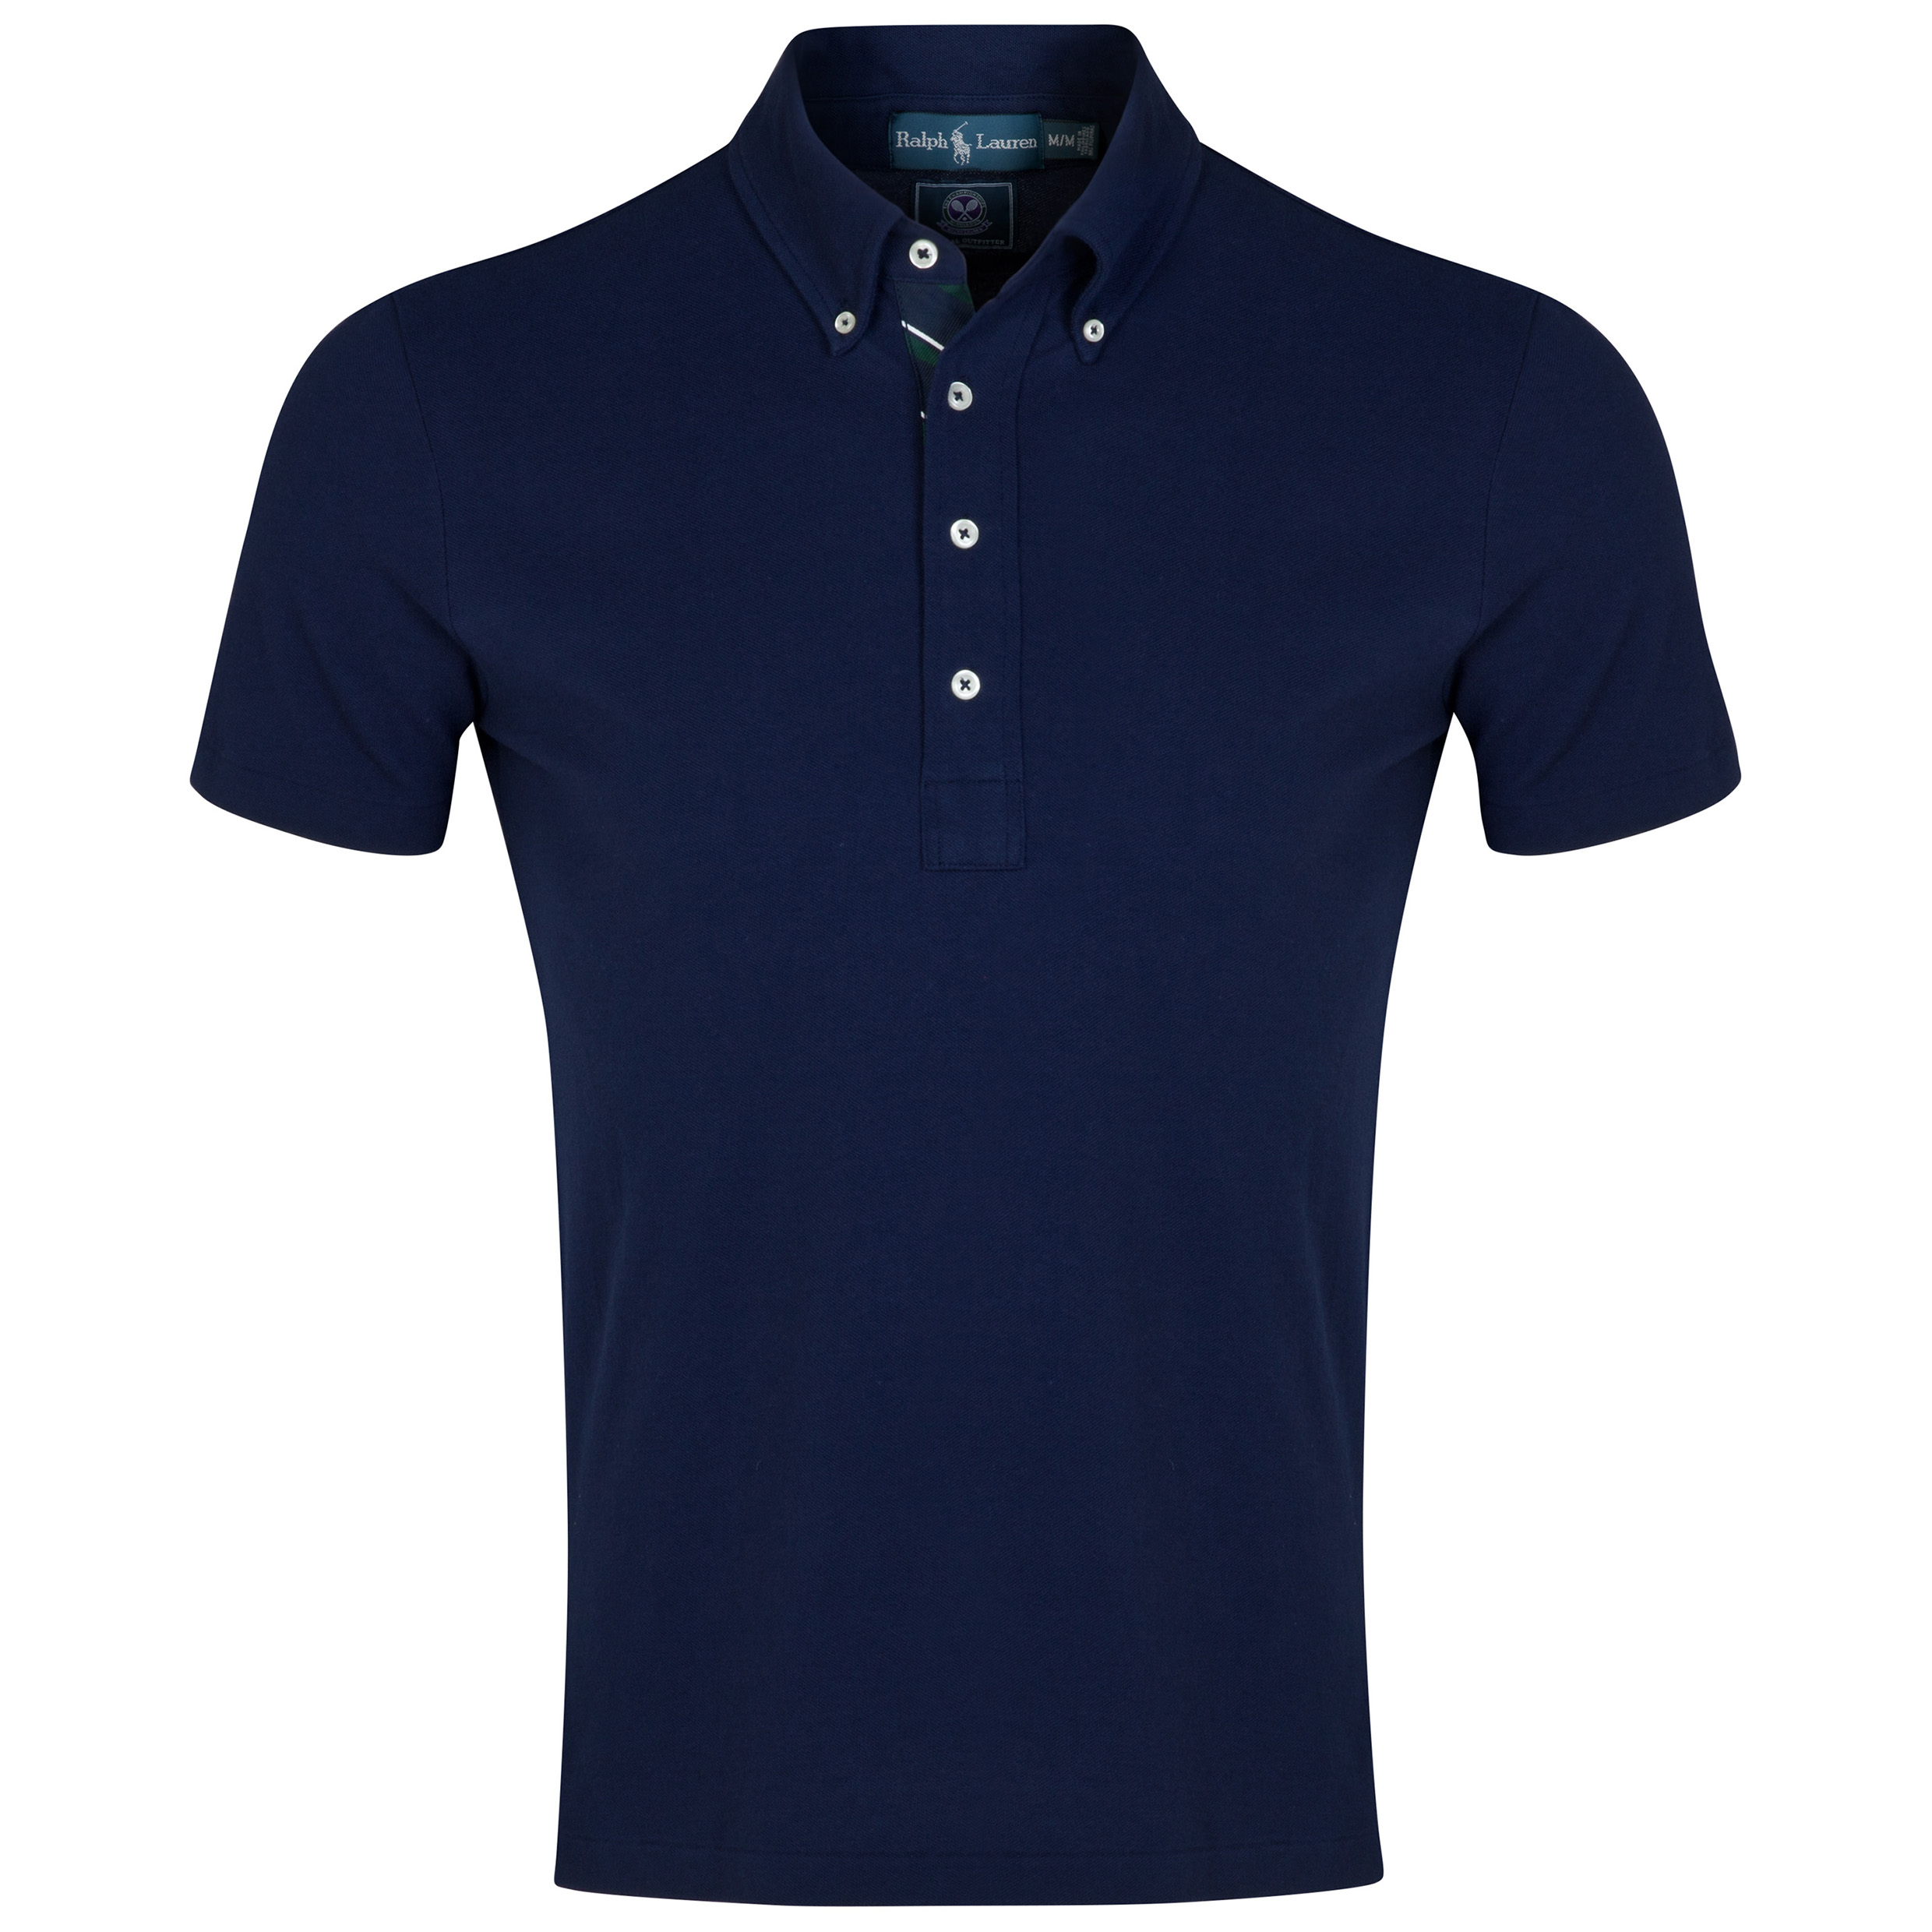 Wimbledon Polo Ralph Lauren Mesh Polo - French Navy